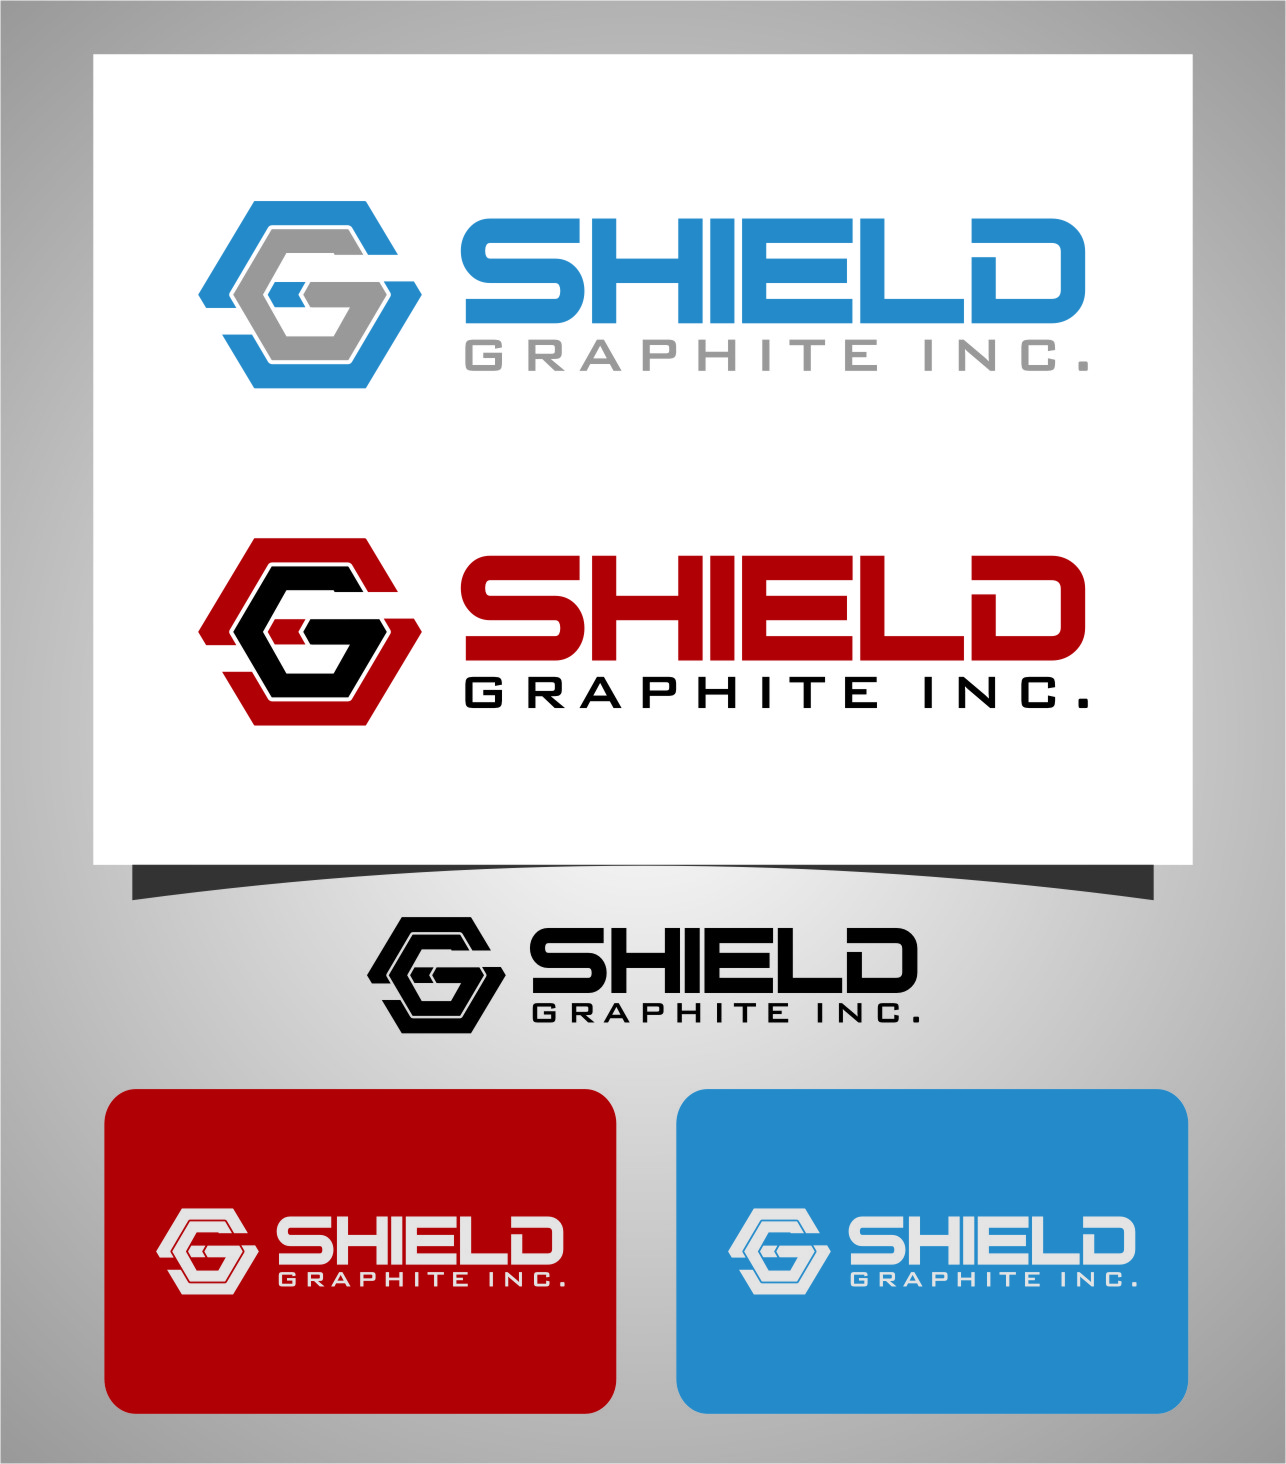 Logo Design by Ngepet_art - Entry No. 152 in the Logo Design Contest Imaginative Logo Design for Shield Graphite Inc..